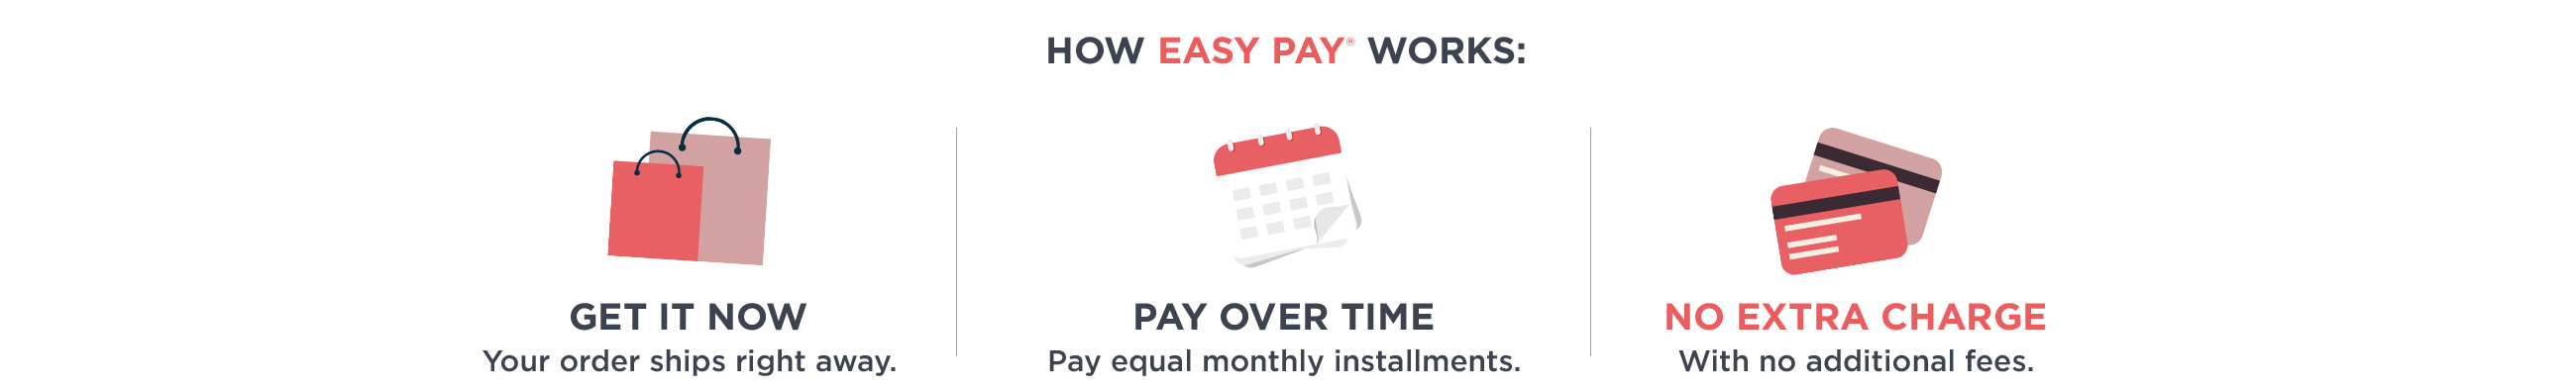 How Easy Pay Works: Get It Now - Your order ships right away. Pay Over Time - Pay equal monthly installments. No Extra Charge- With no additional fees